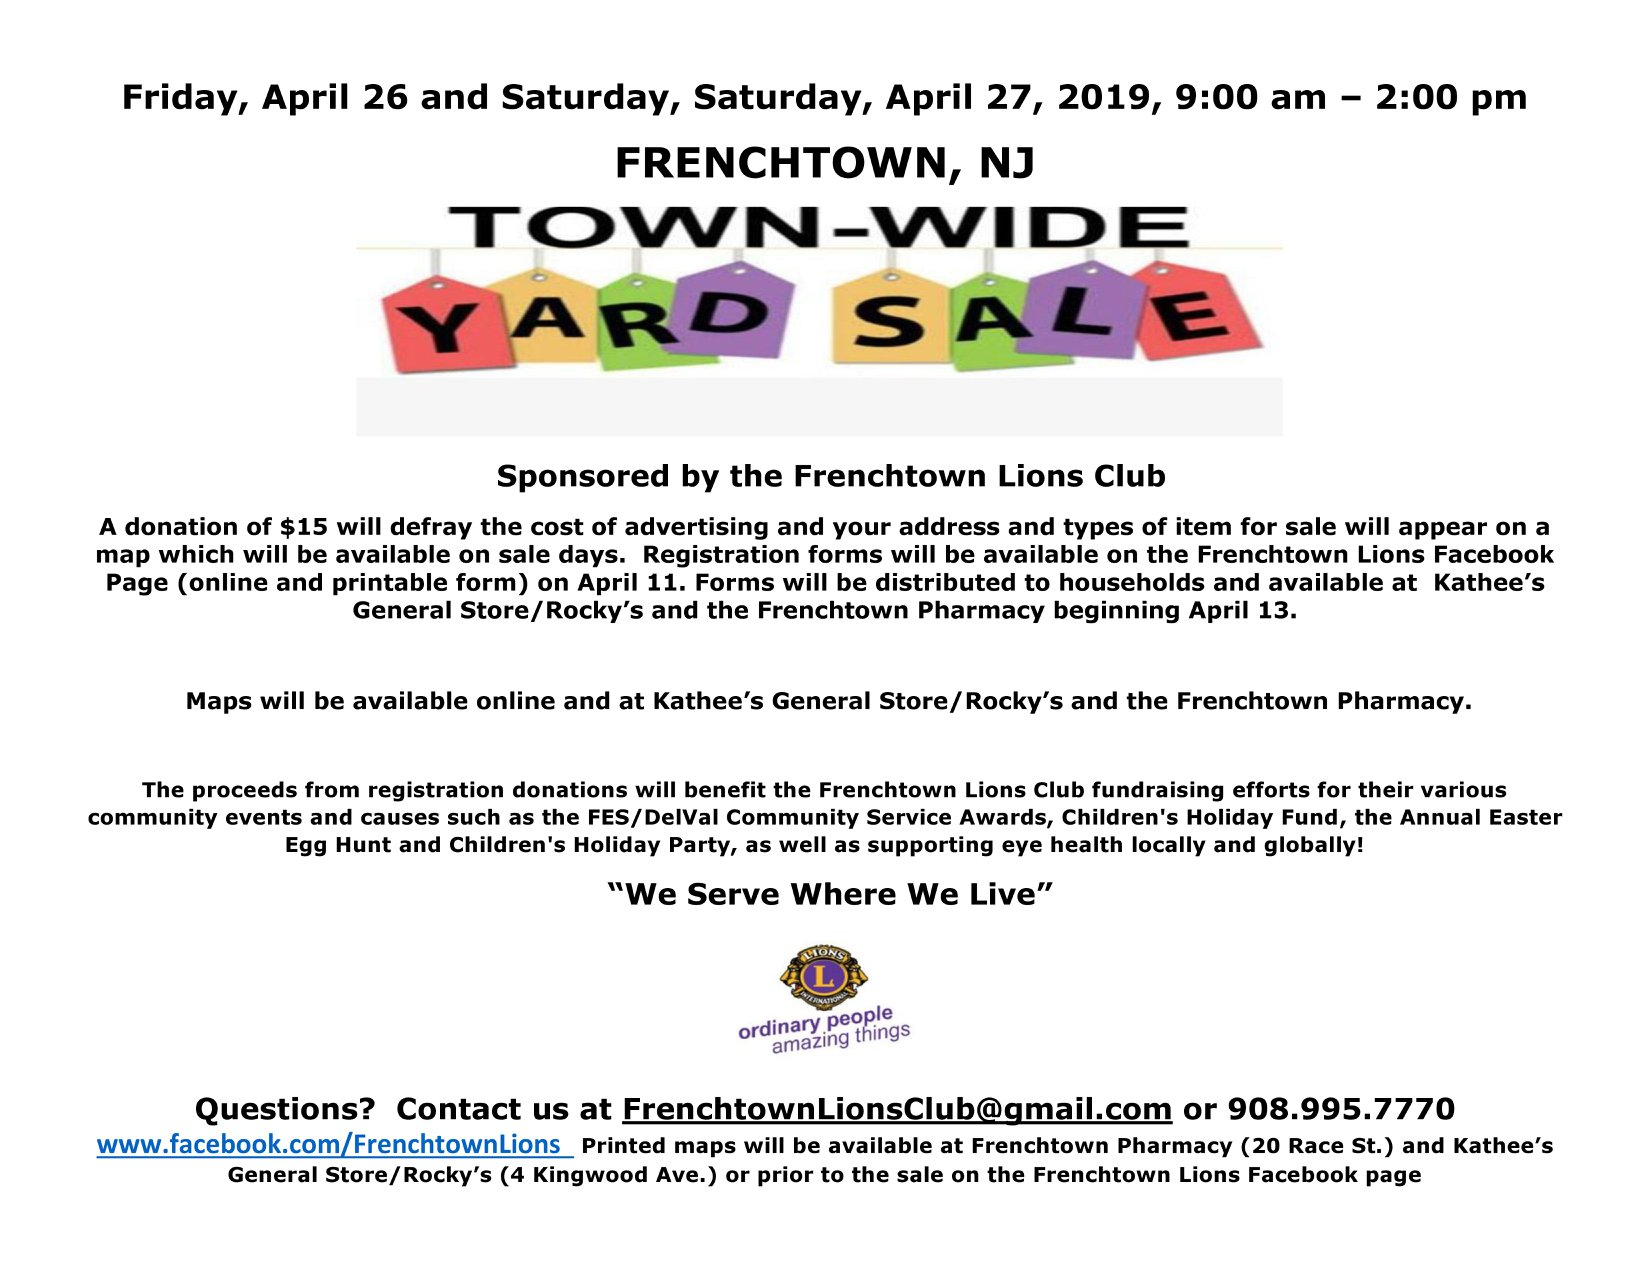 Frenchtown Lions Club Town-Wide Yard Sale - April 26th